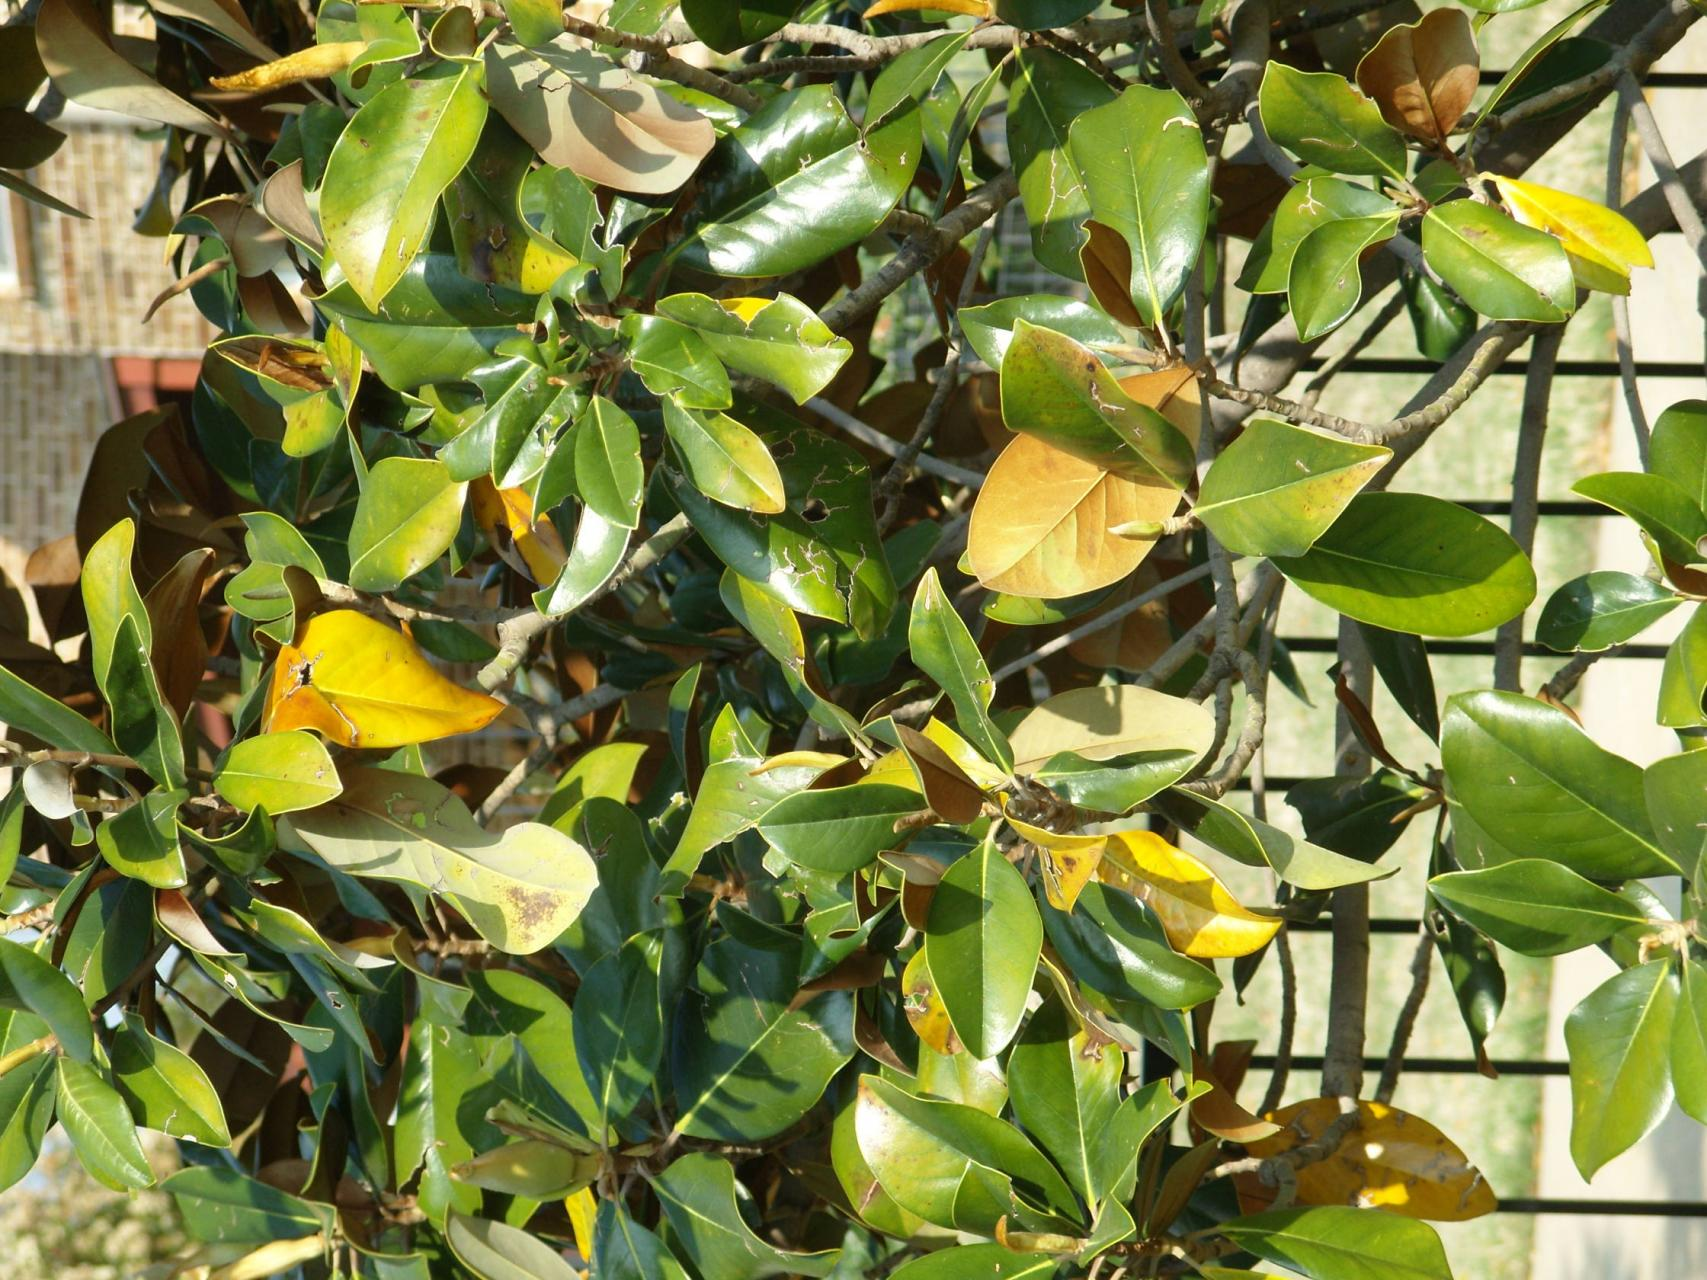 My Southern Magnolia Has Yellow Leaves Whats The Cause Dummer